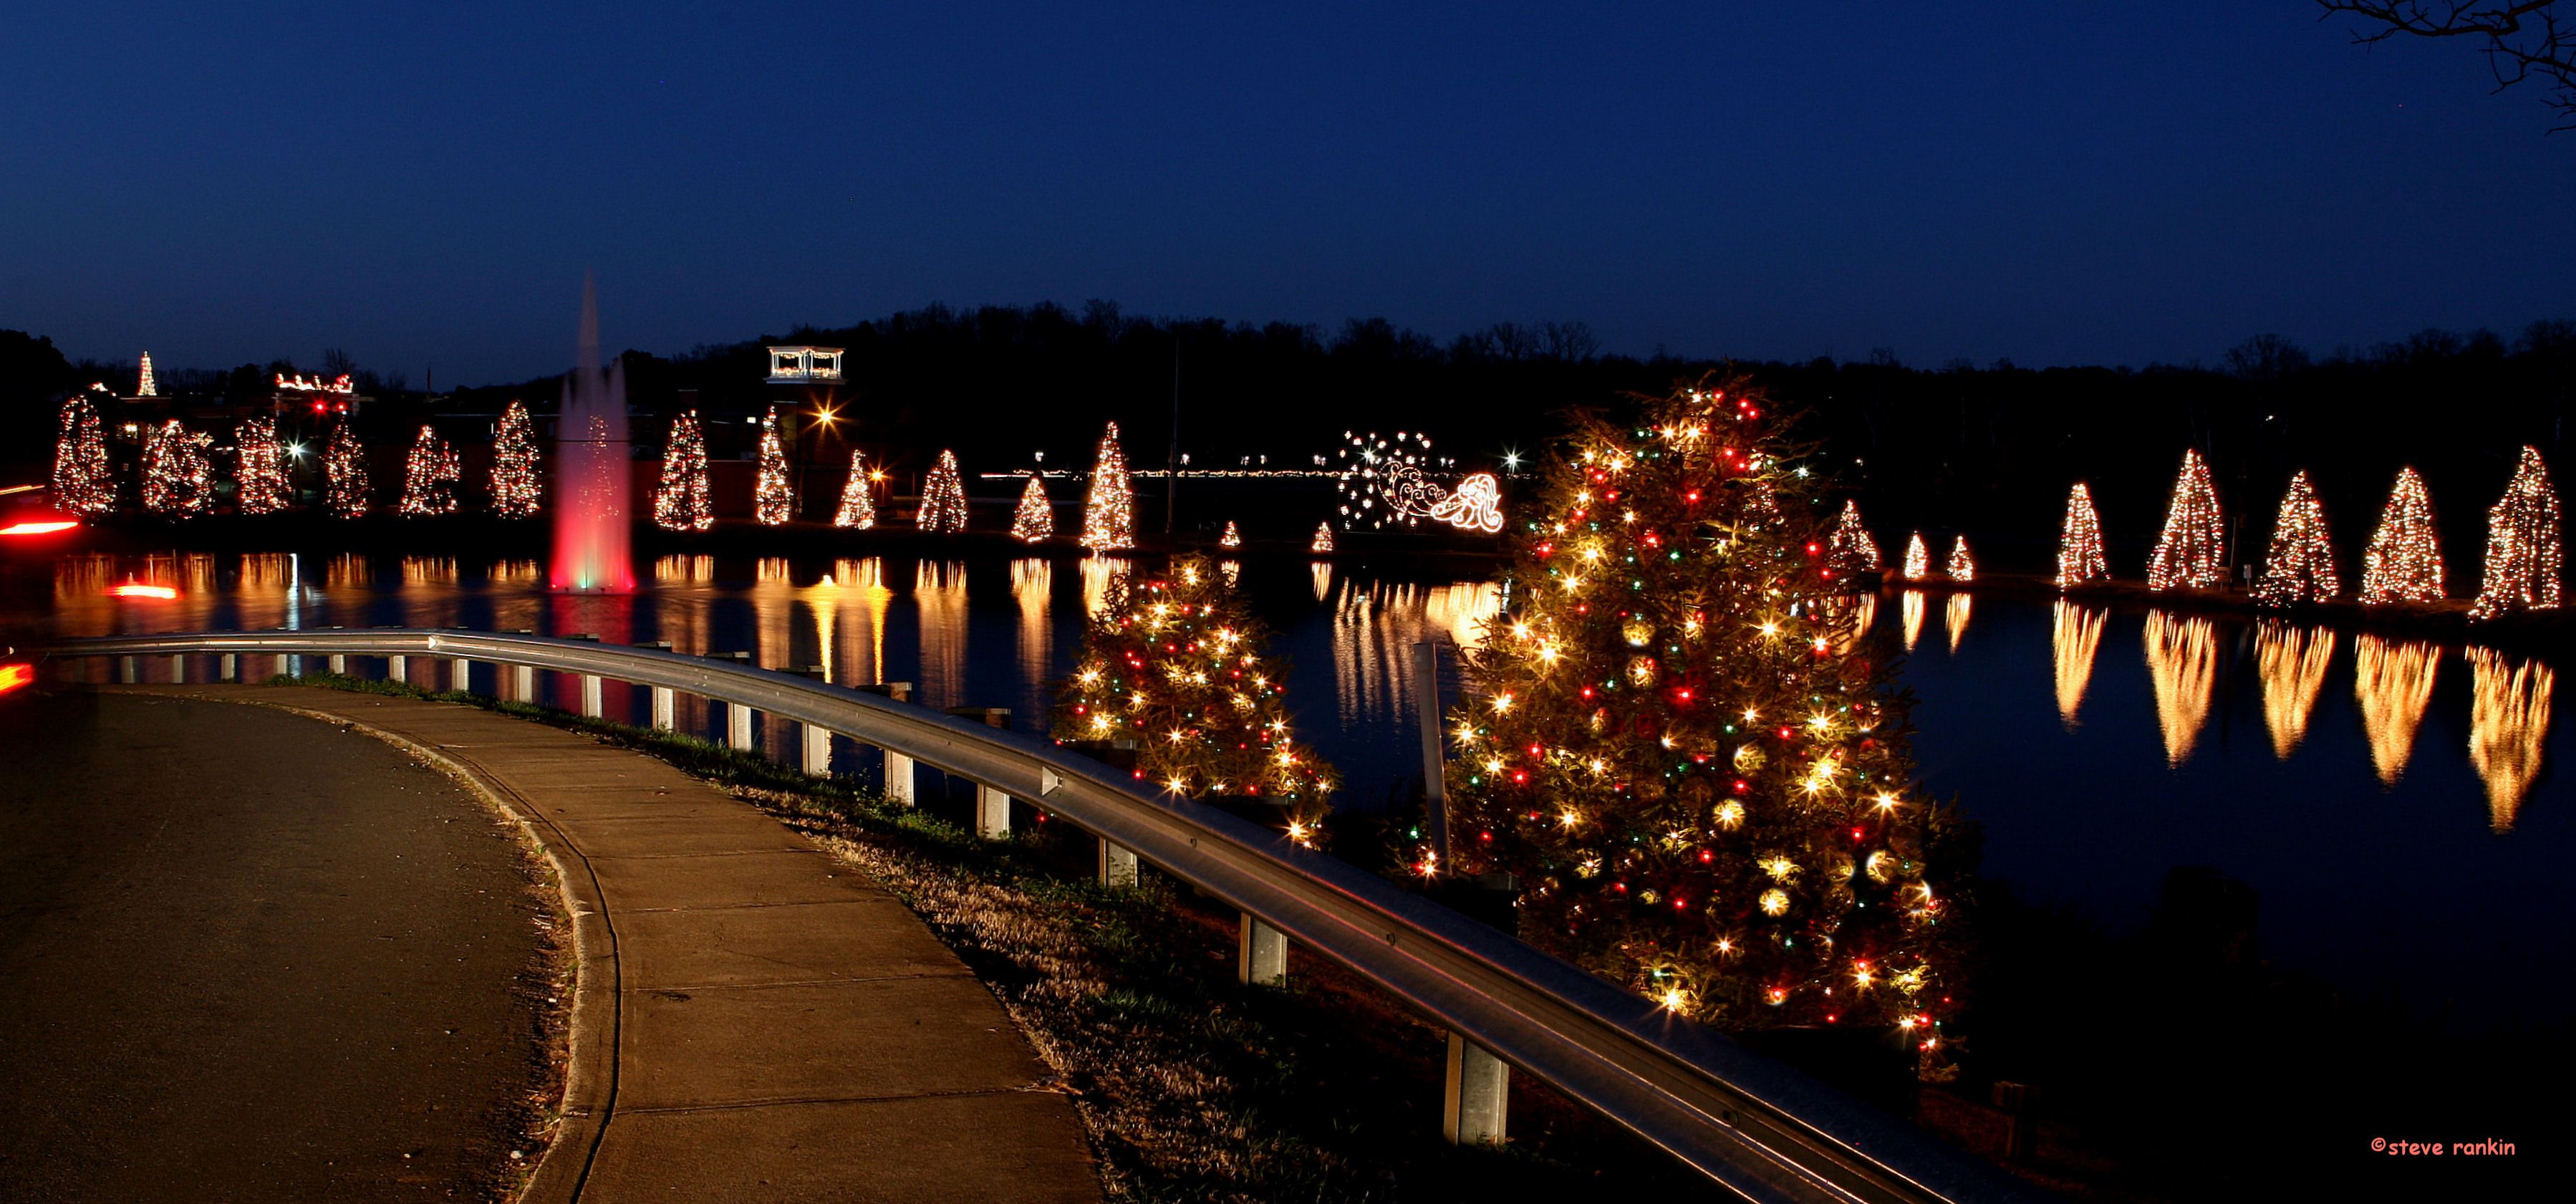 mcadenville north carolina is christmastown usa - Christmas Town North Carolina